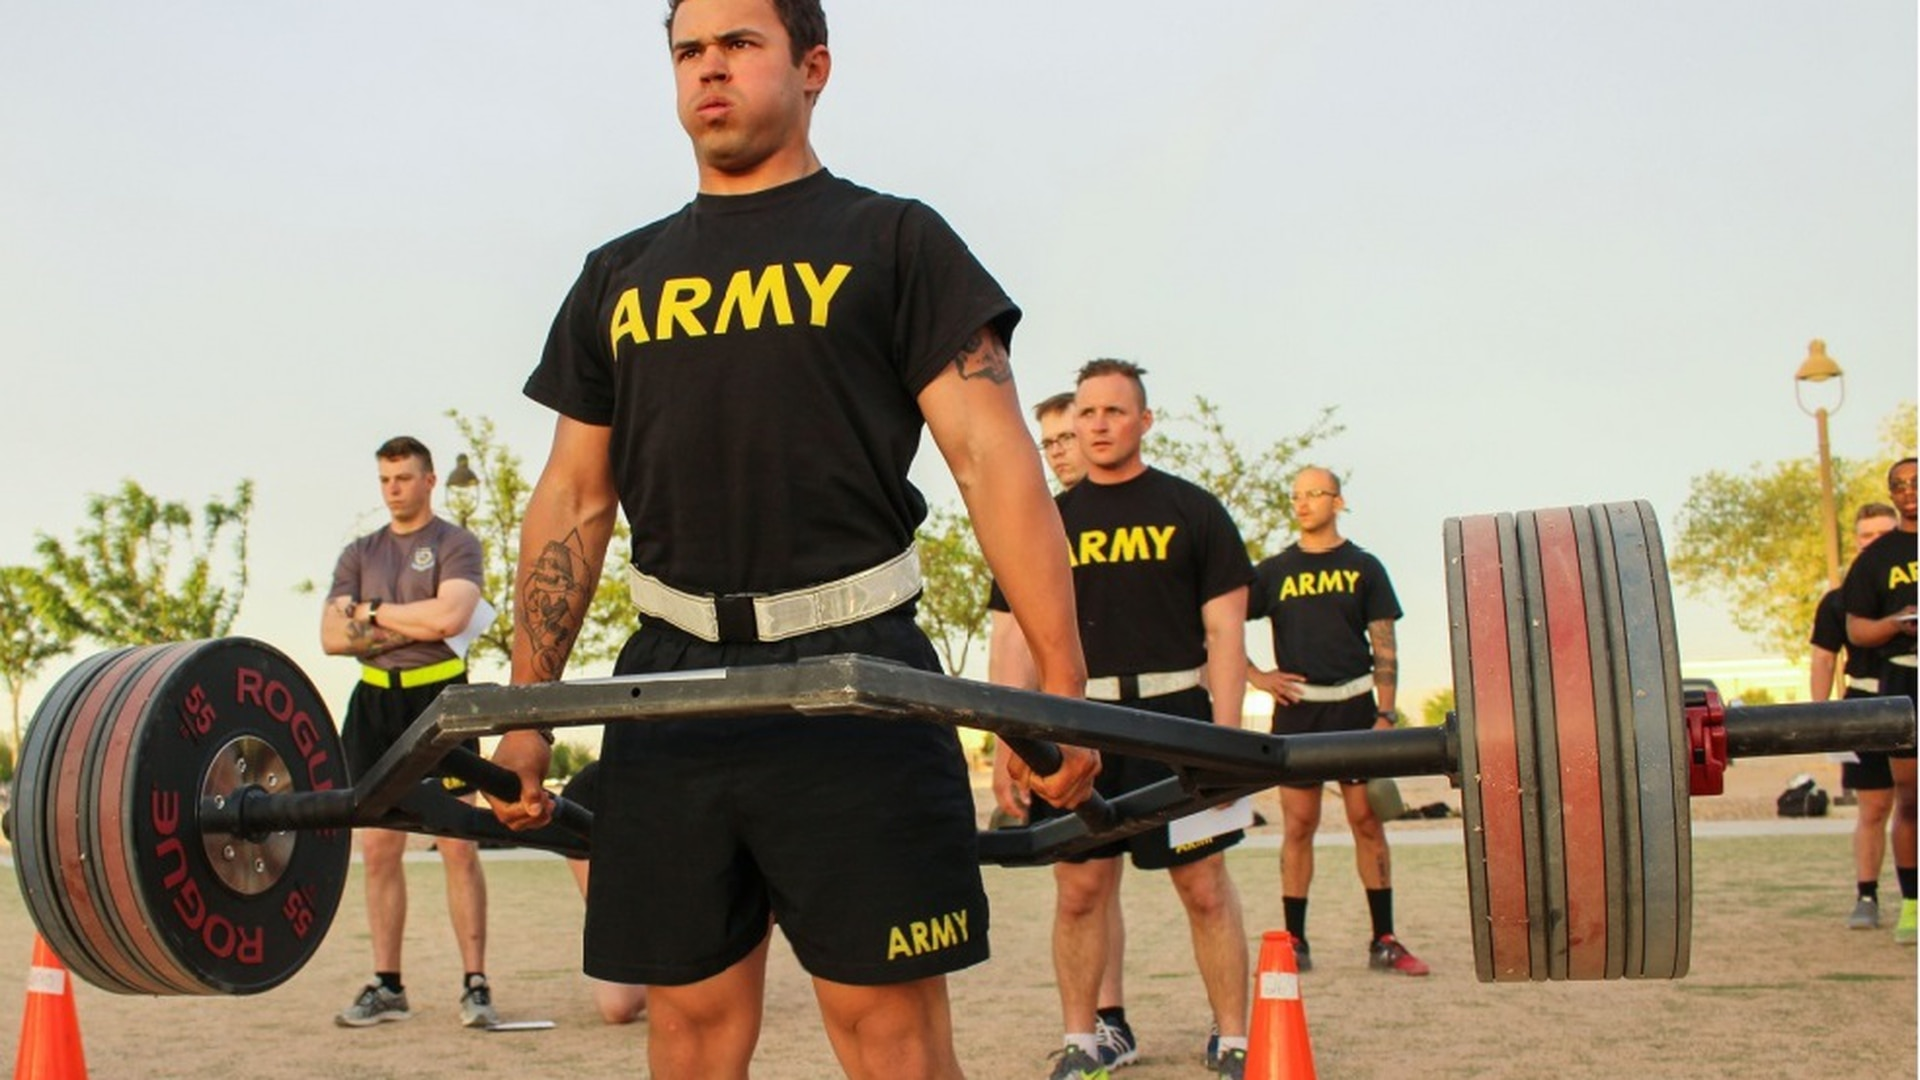 A soldier conducts a dead lift during a pilot program for the Army Combat Fitness Test at Fort Bliss, Texas, last year. (Sgt. Brittany Johnson/Army)